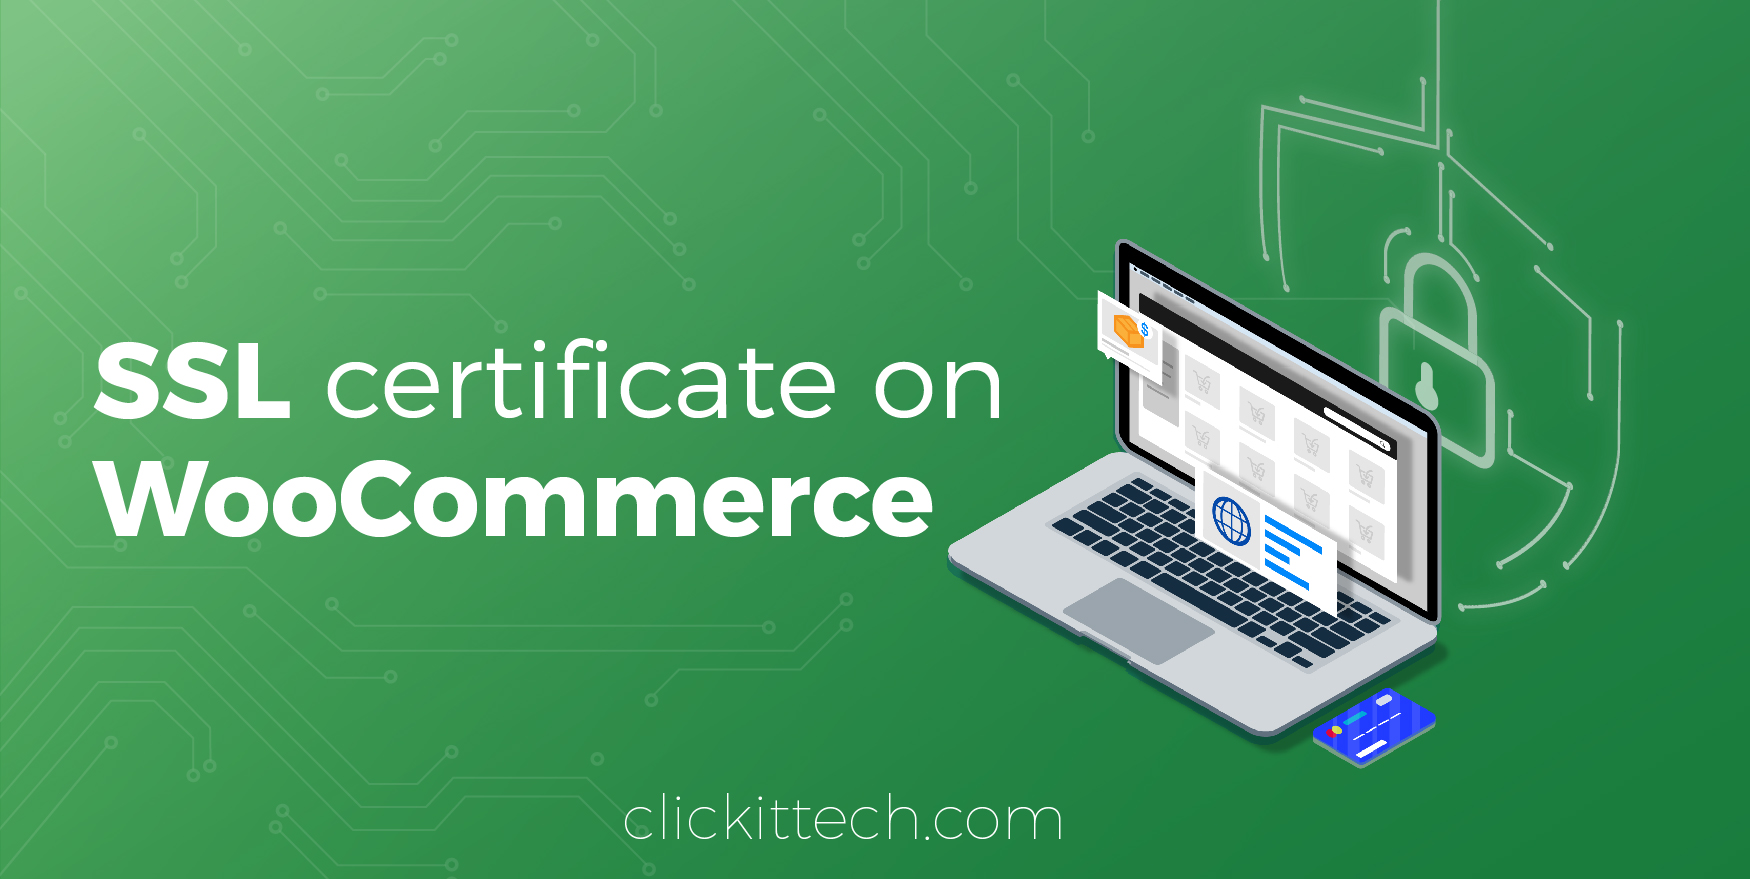 Install an SSL certificate on your WordPress site with WooCommerce